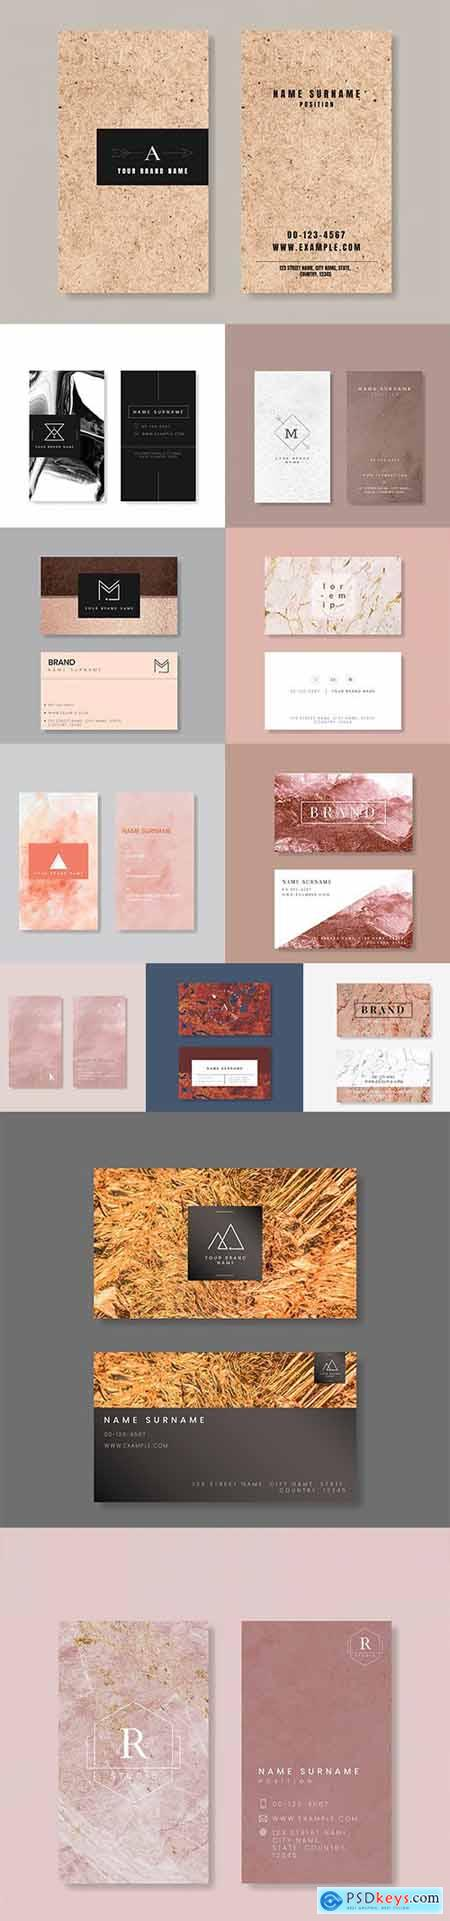 Set of Professional Business Card Templates vol1